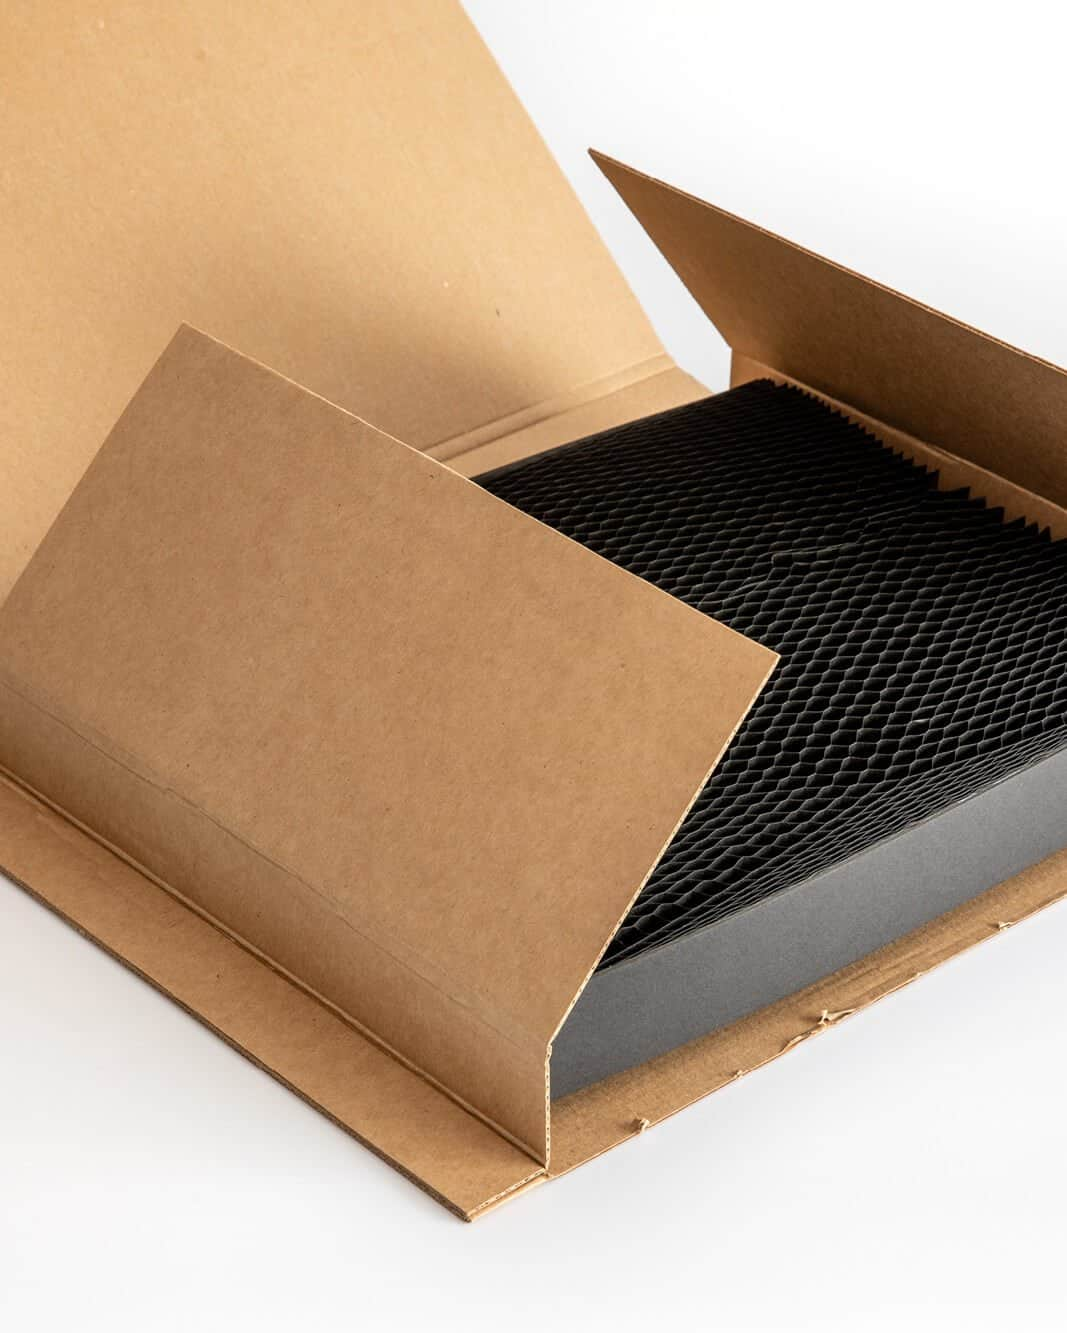 Electronics packaging for all devices